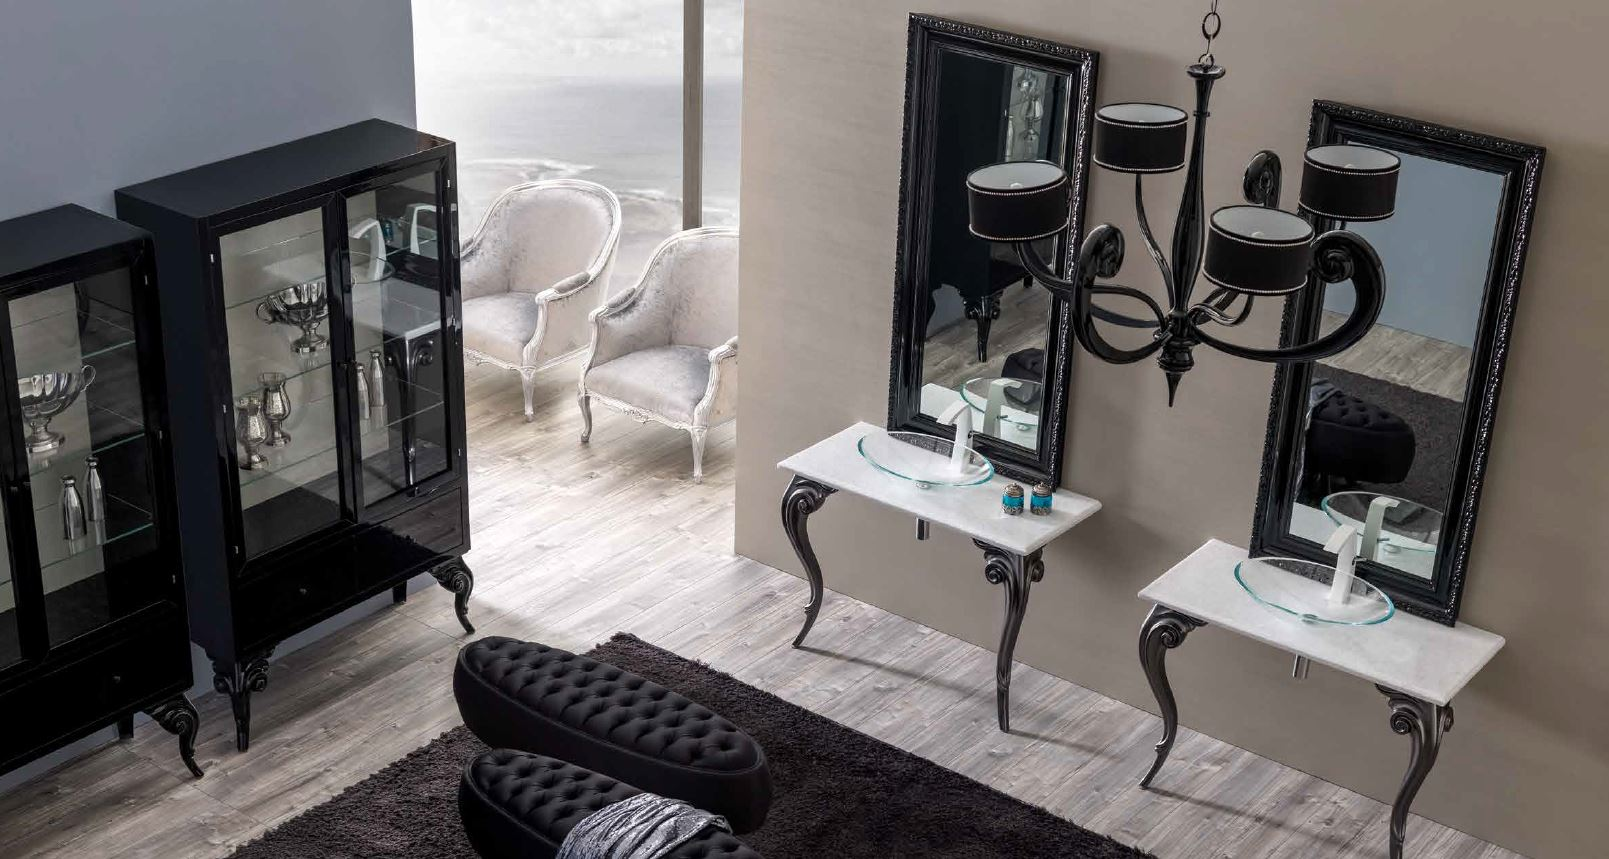 antares waschbecken by cortezari. Black Bedroom Furniture Sets. Home Design Ideas